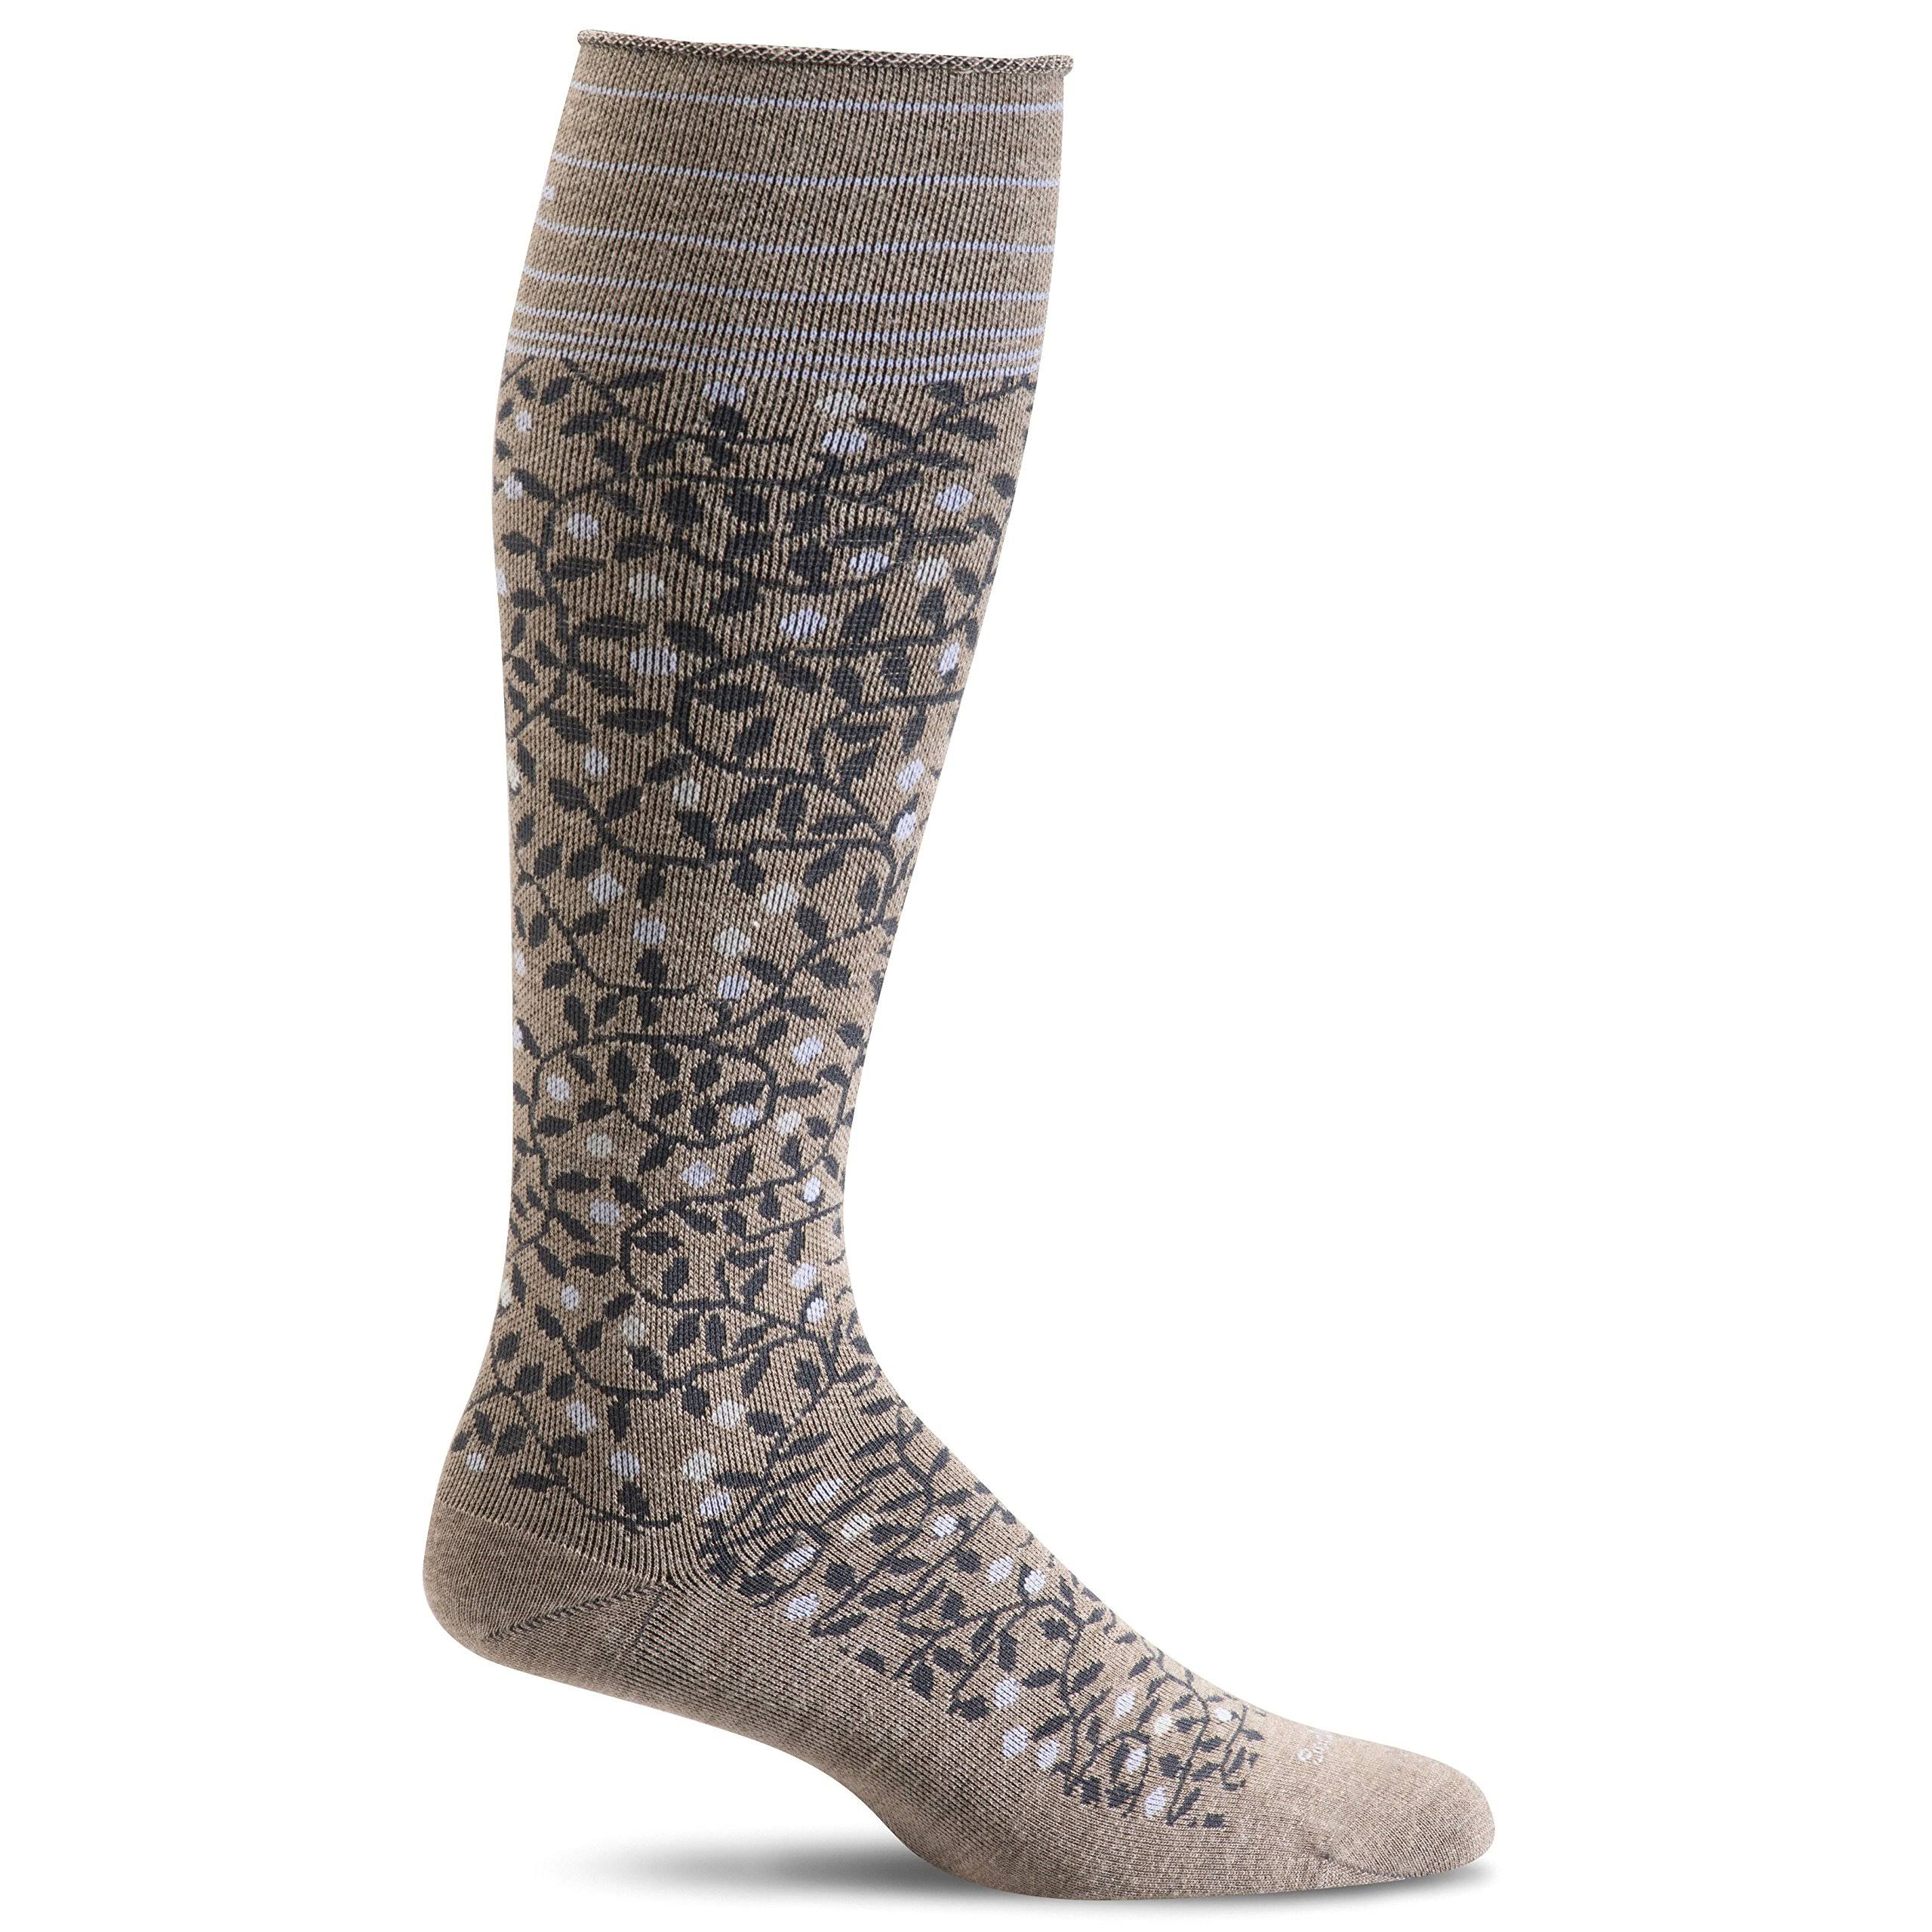 Sockwell Women's New Leaf Firm Compression Socks M/L / Khaki